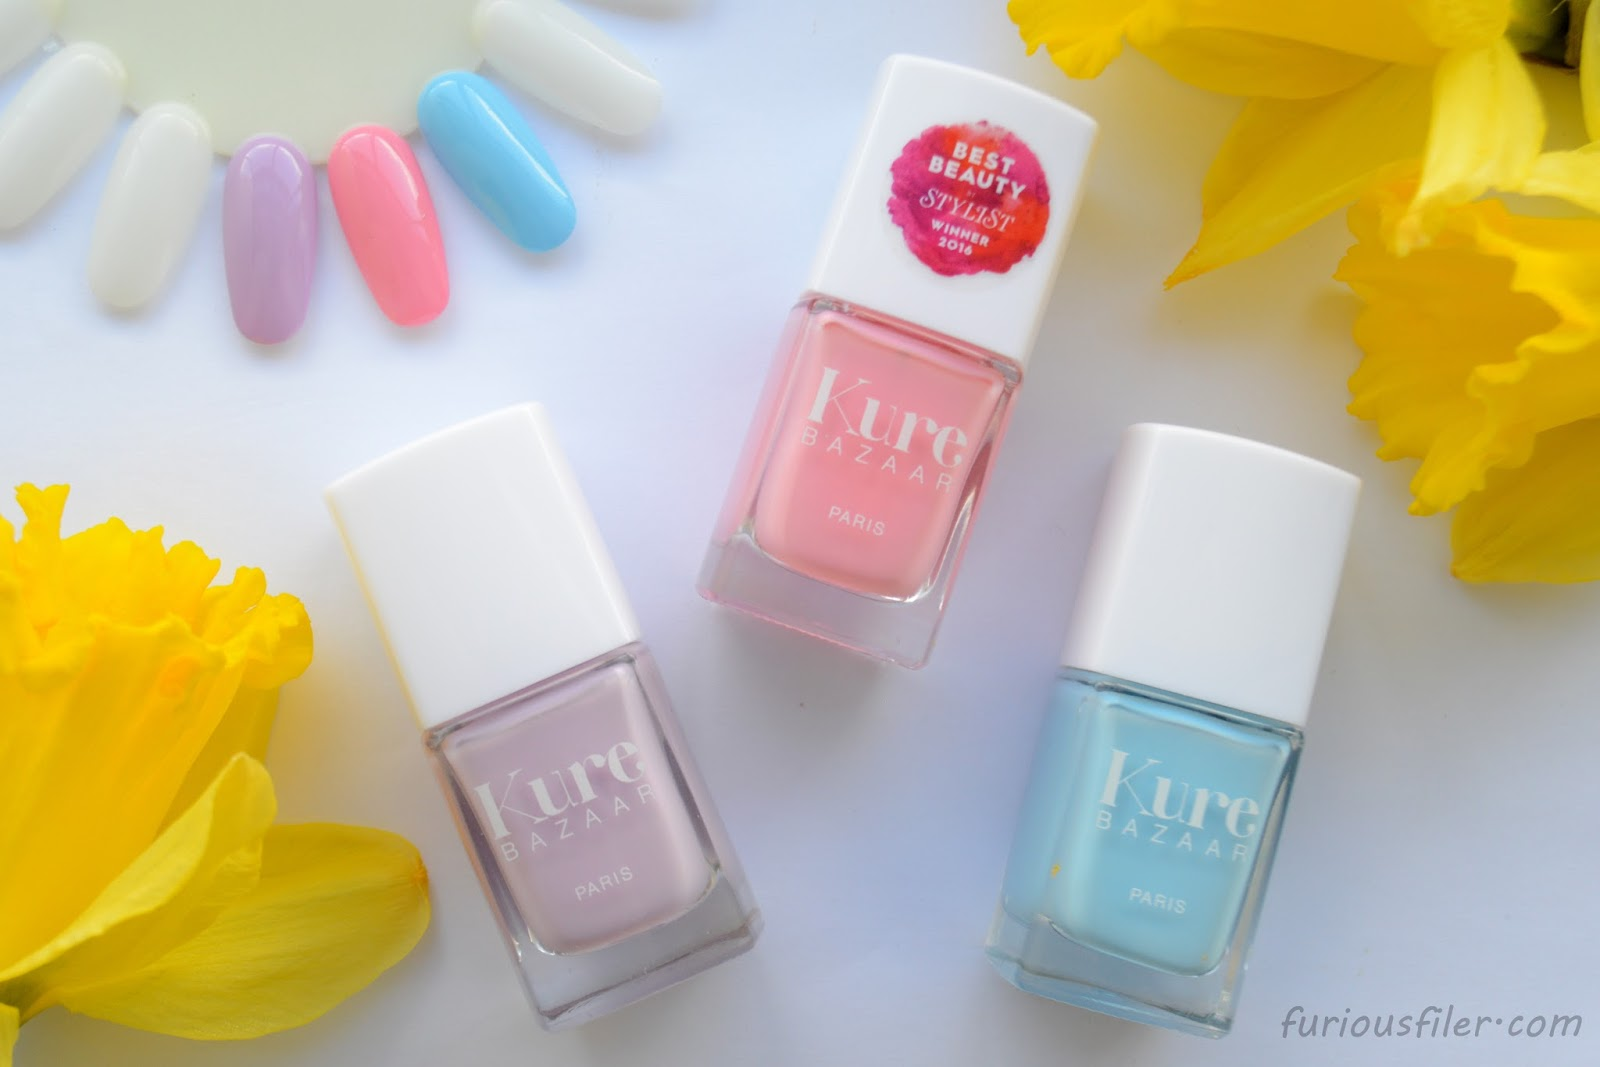 kure bazaar nail polish review pastels furious filer